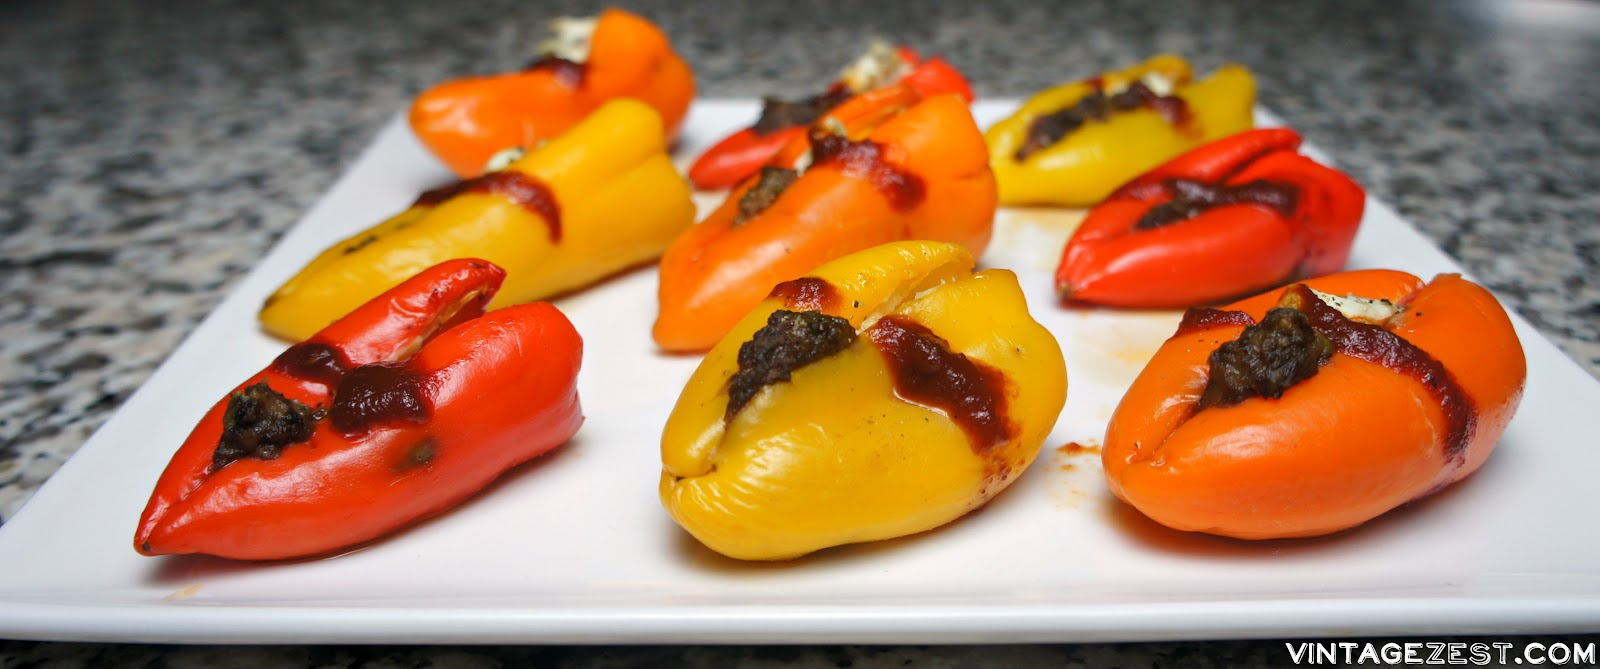 Flaming Sweet Pepper Poppers on Diane's Vintage Zest!  A super easy party-ready appetizer that's colorful and delicious! #ad #VivaLaMorena #recipe #spicy #jalapeno #stuffed